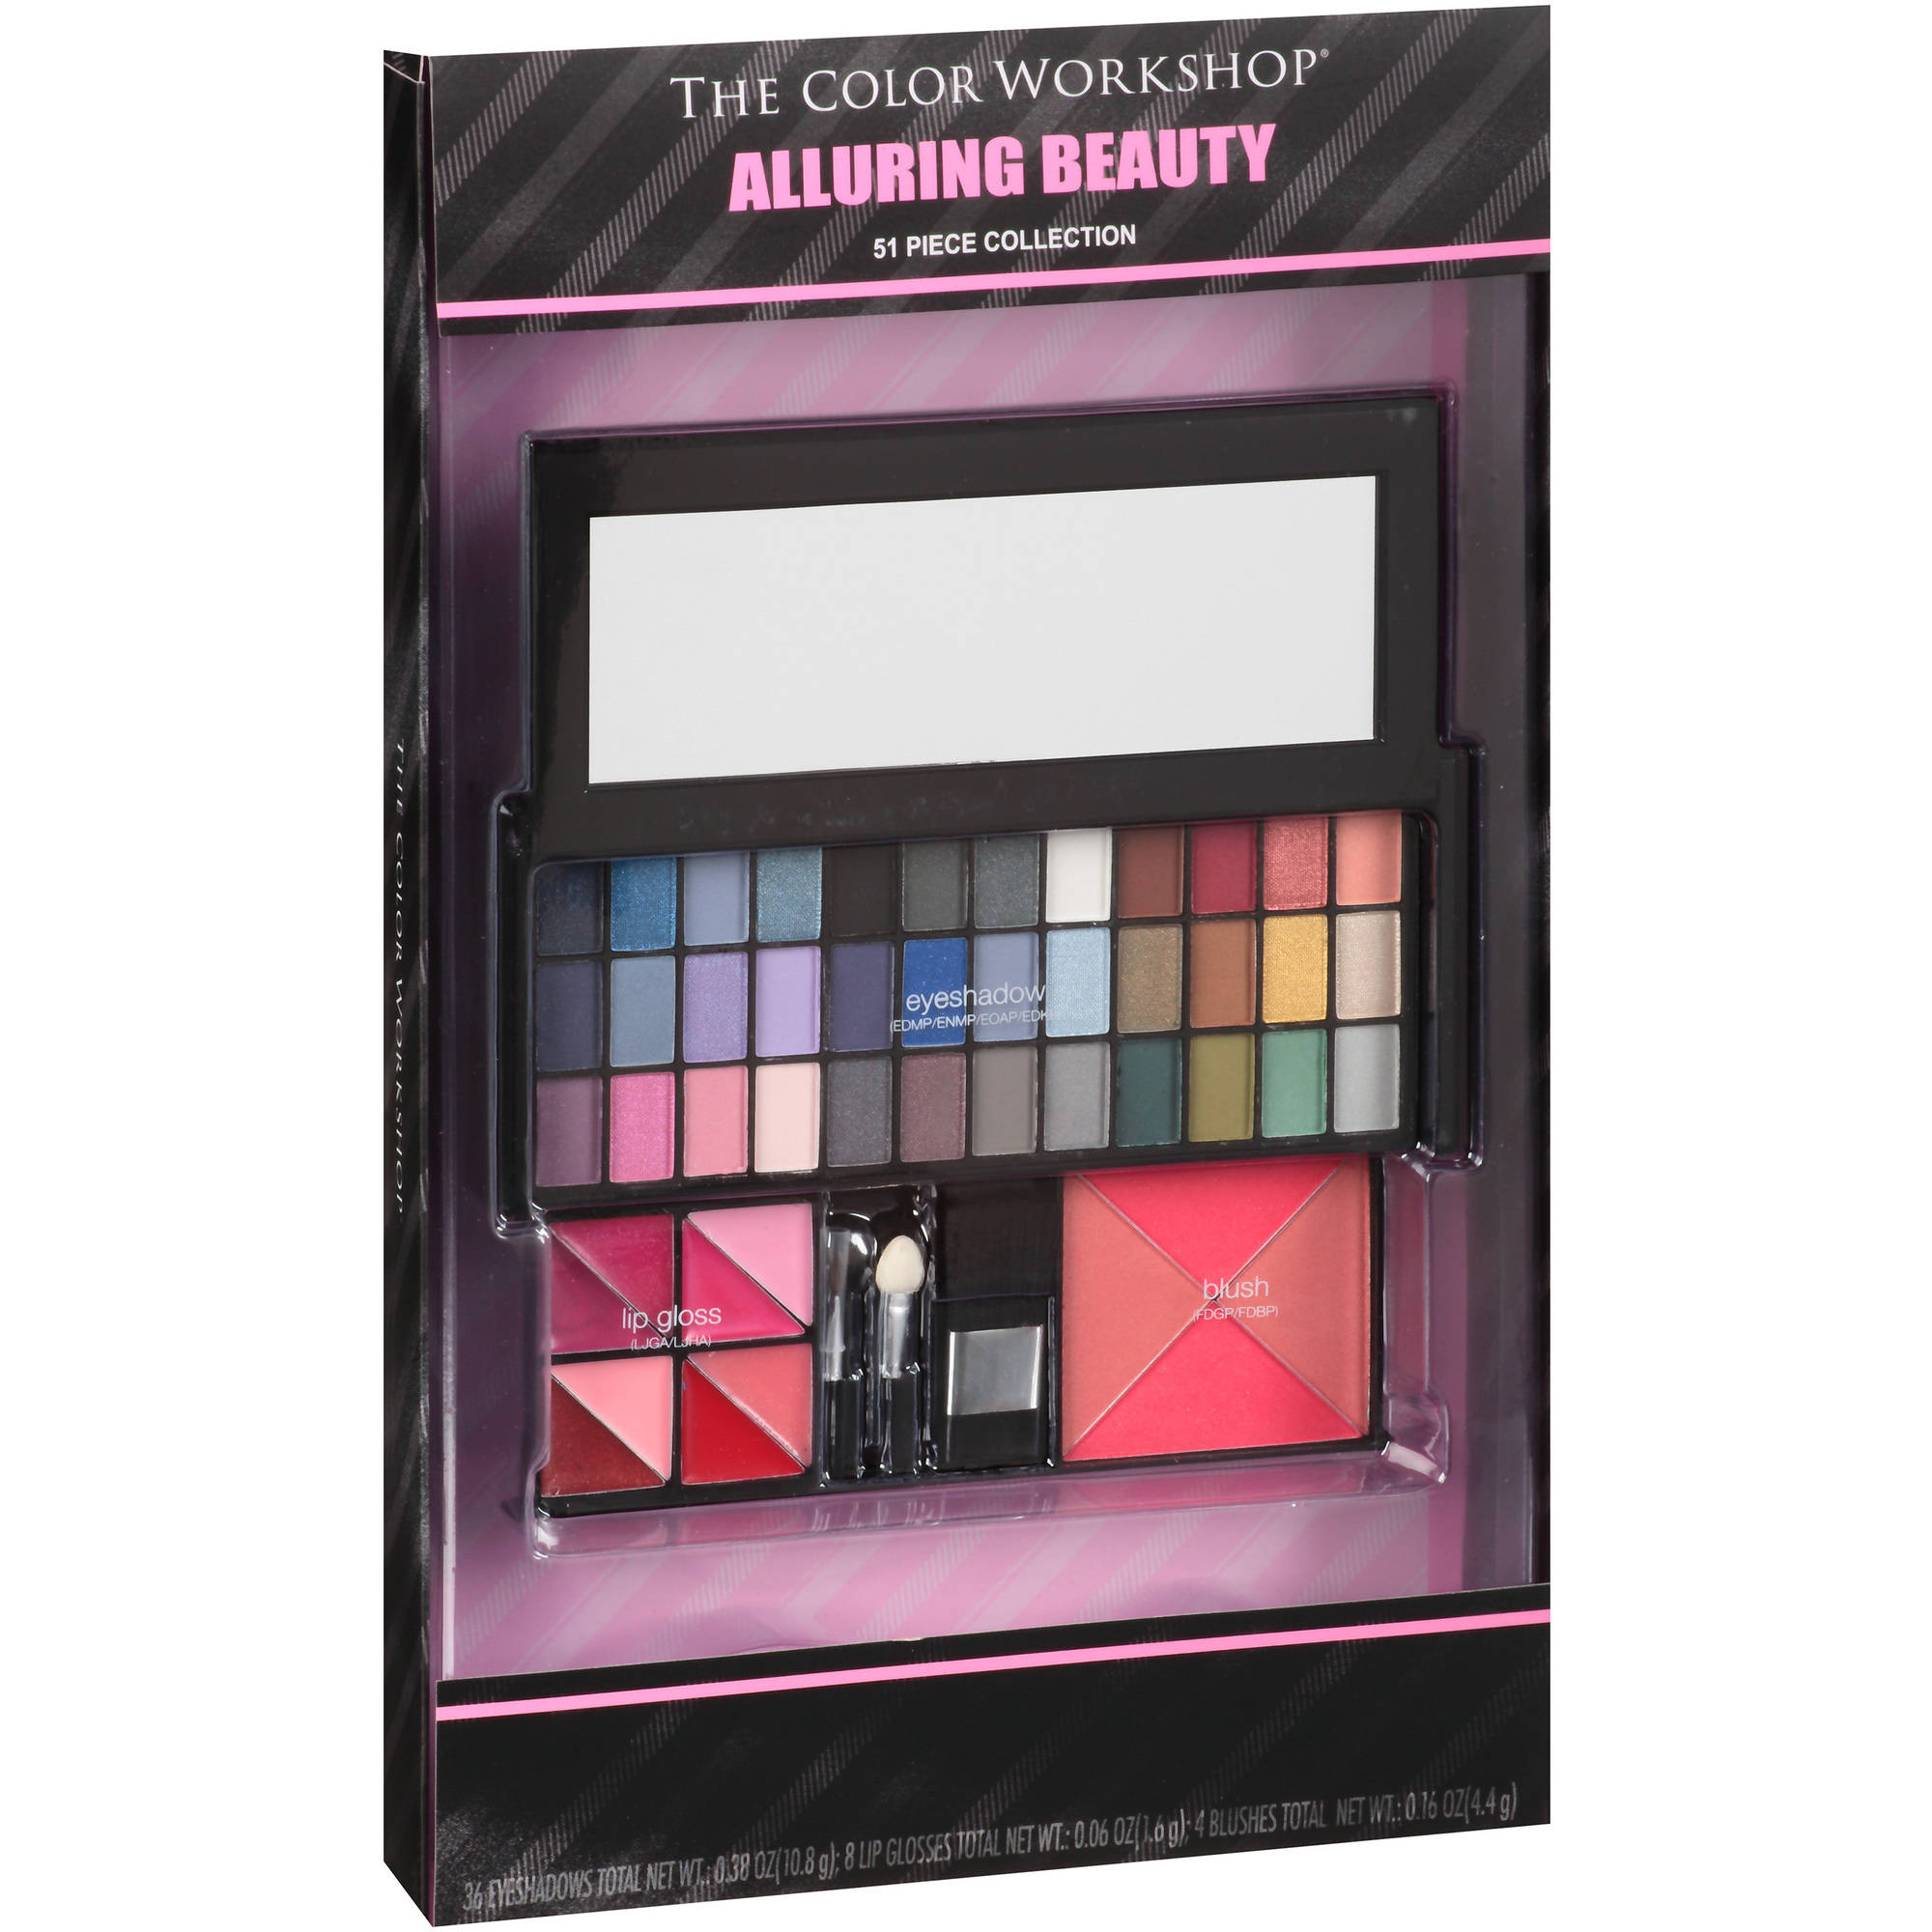 The Color Workshop Alluring Beauty Gift Set, 51 pc